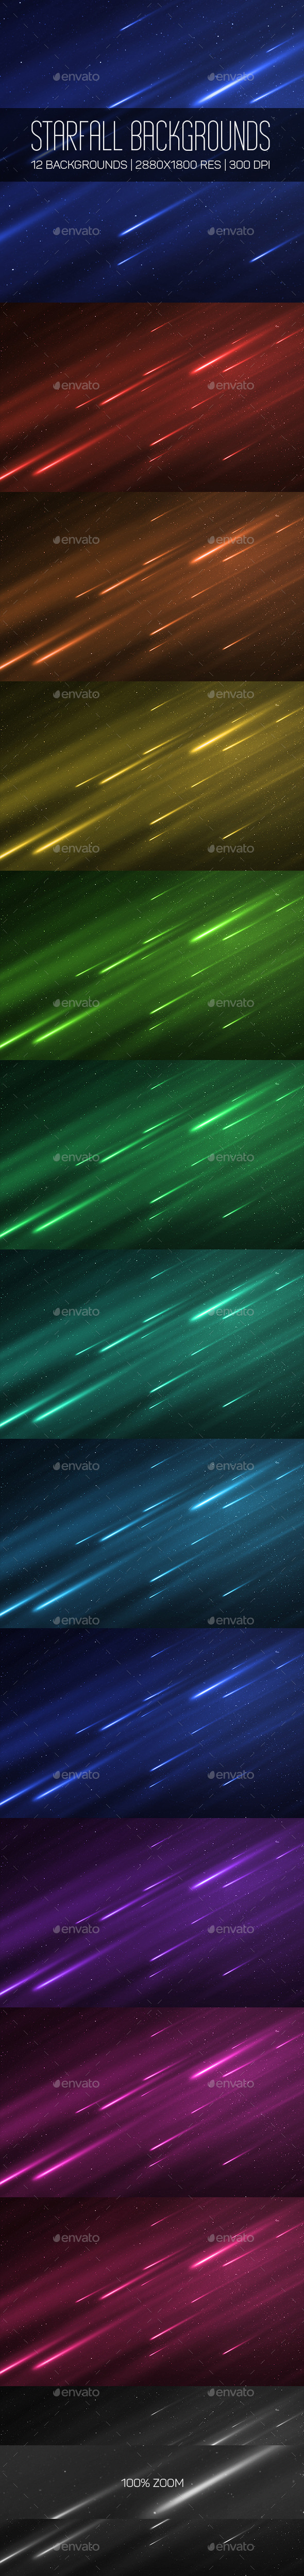 GraphicRiver Starfall Backgrounds 10399299